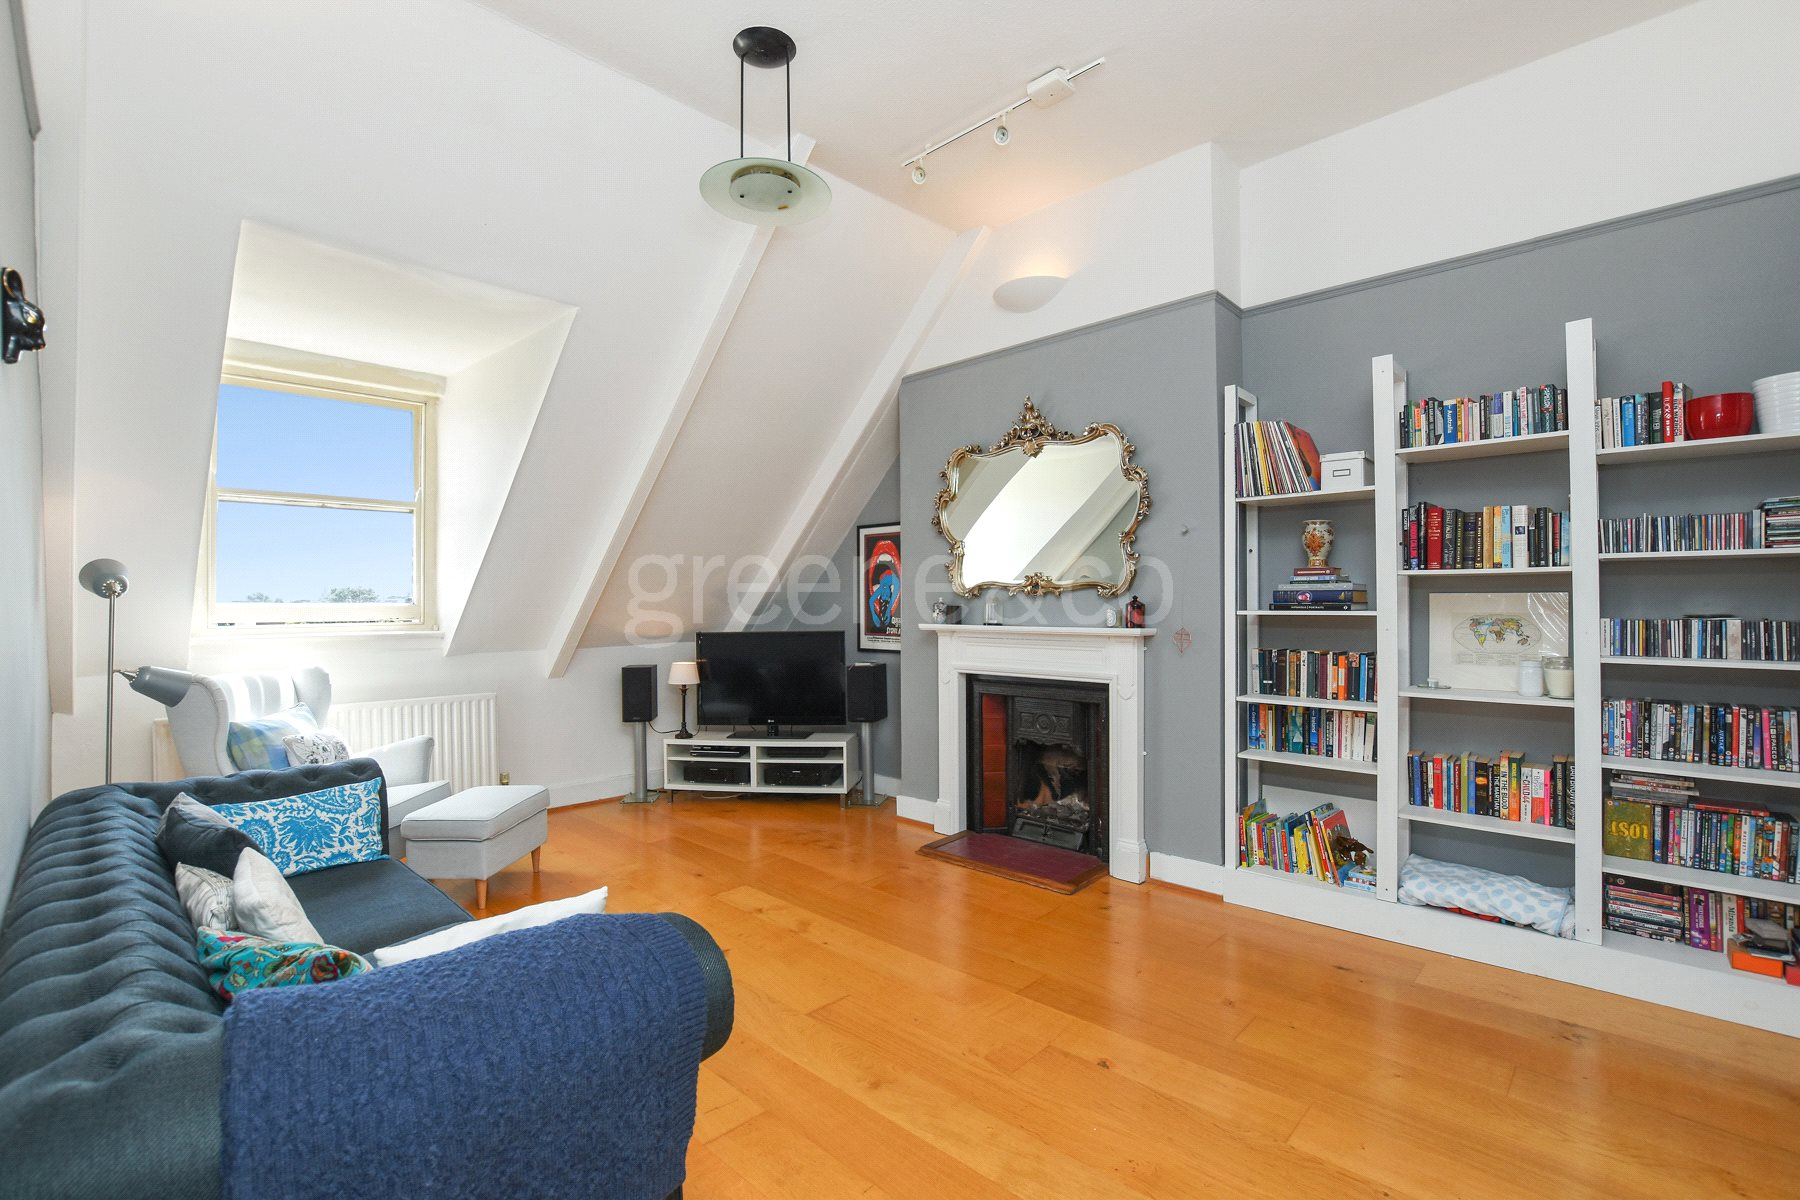 2 Bedrooms Flat for sale in Broadhurst Gardens, London, NW6